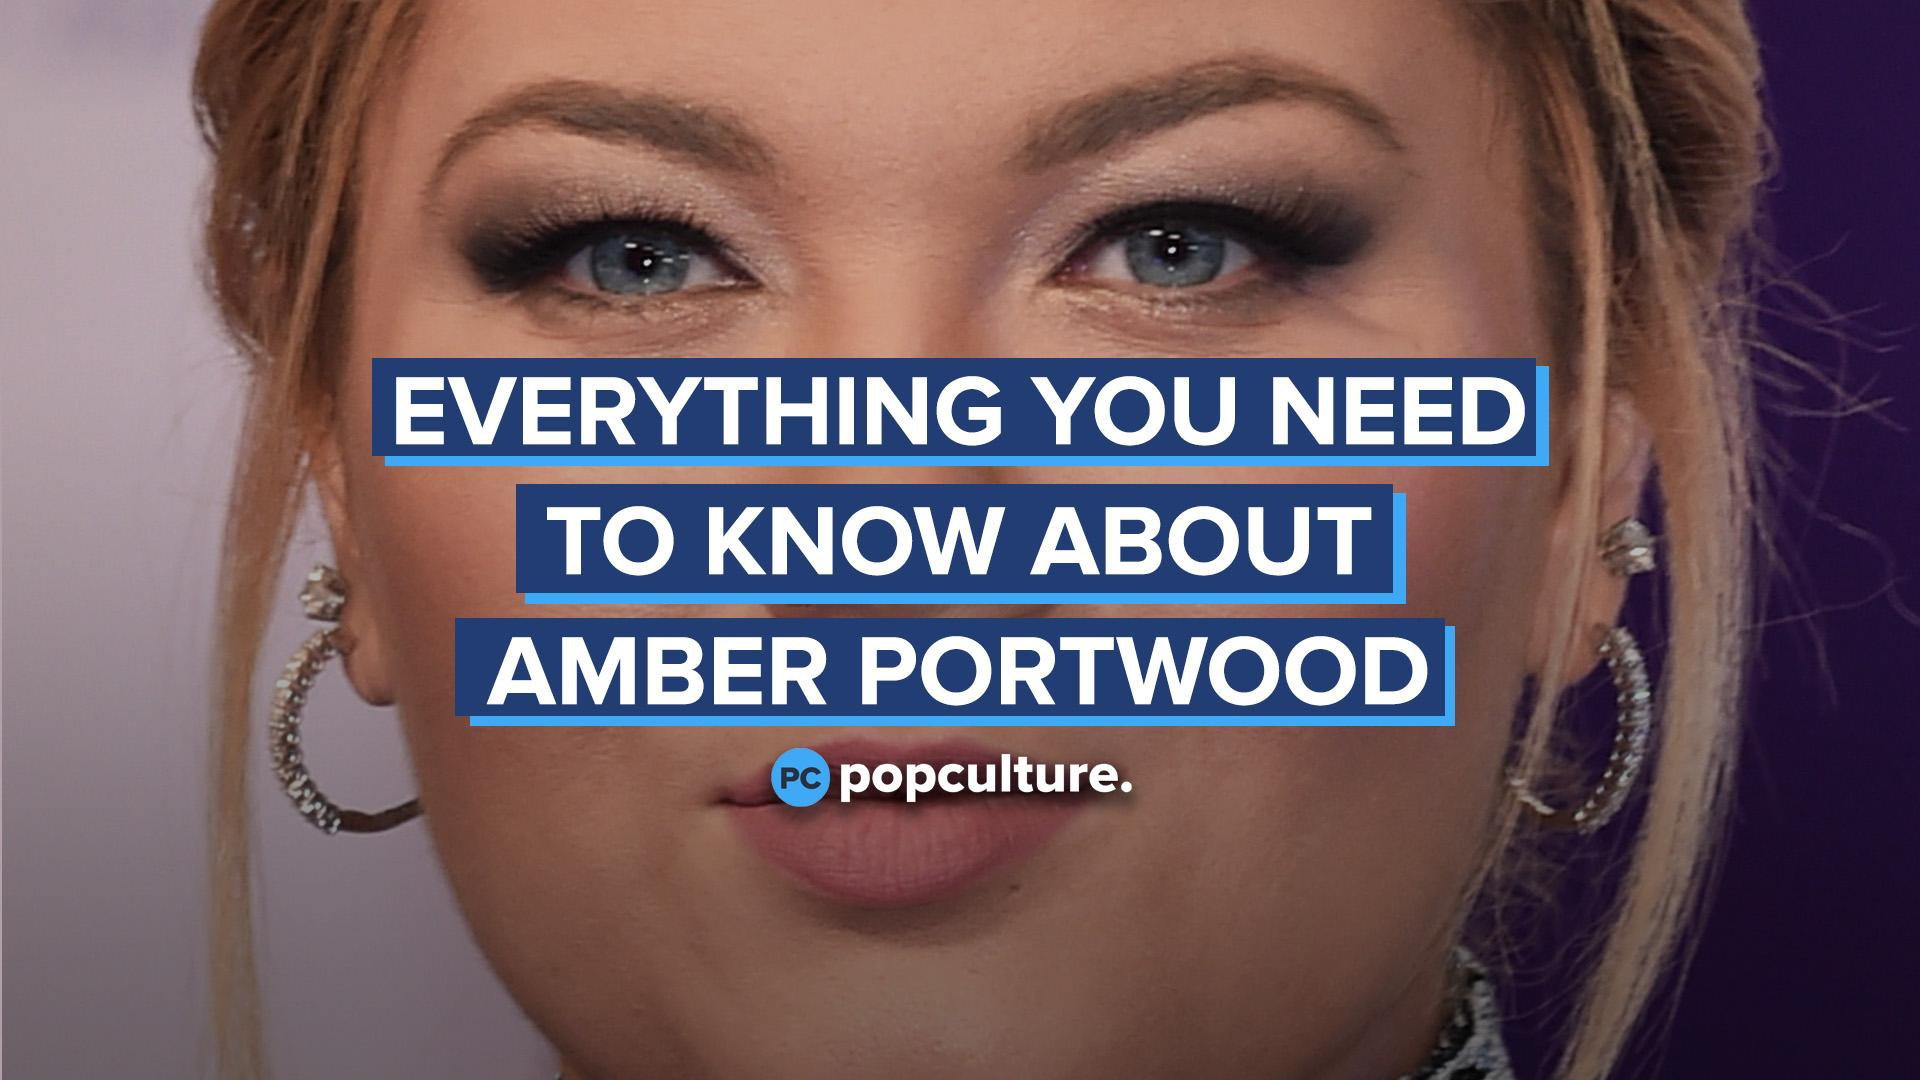 Everything You Need to Know About Amber Portwood screen capture